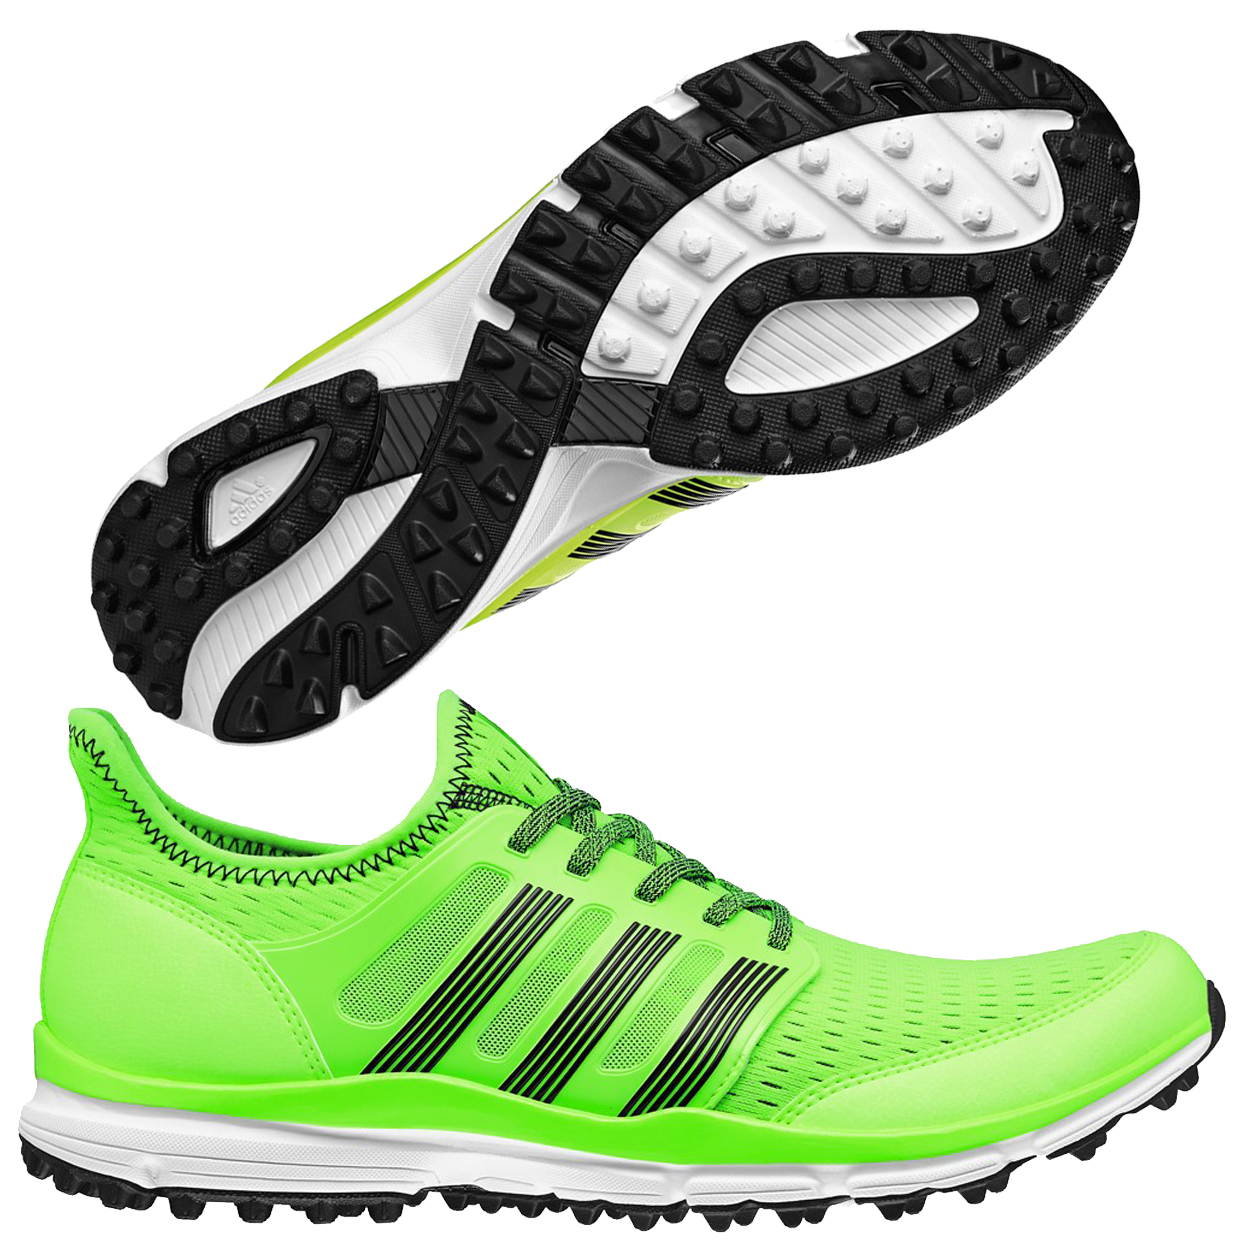 adidas climacool lightweight mesh spikeless golf shoes